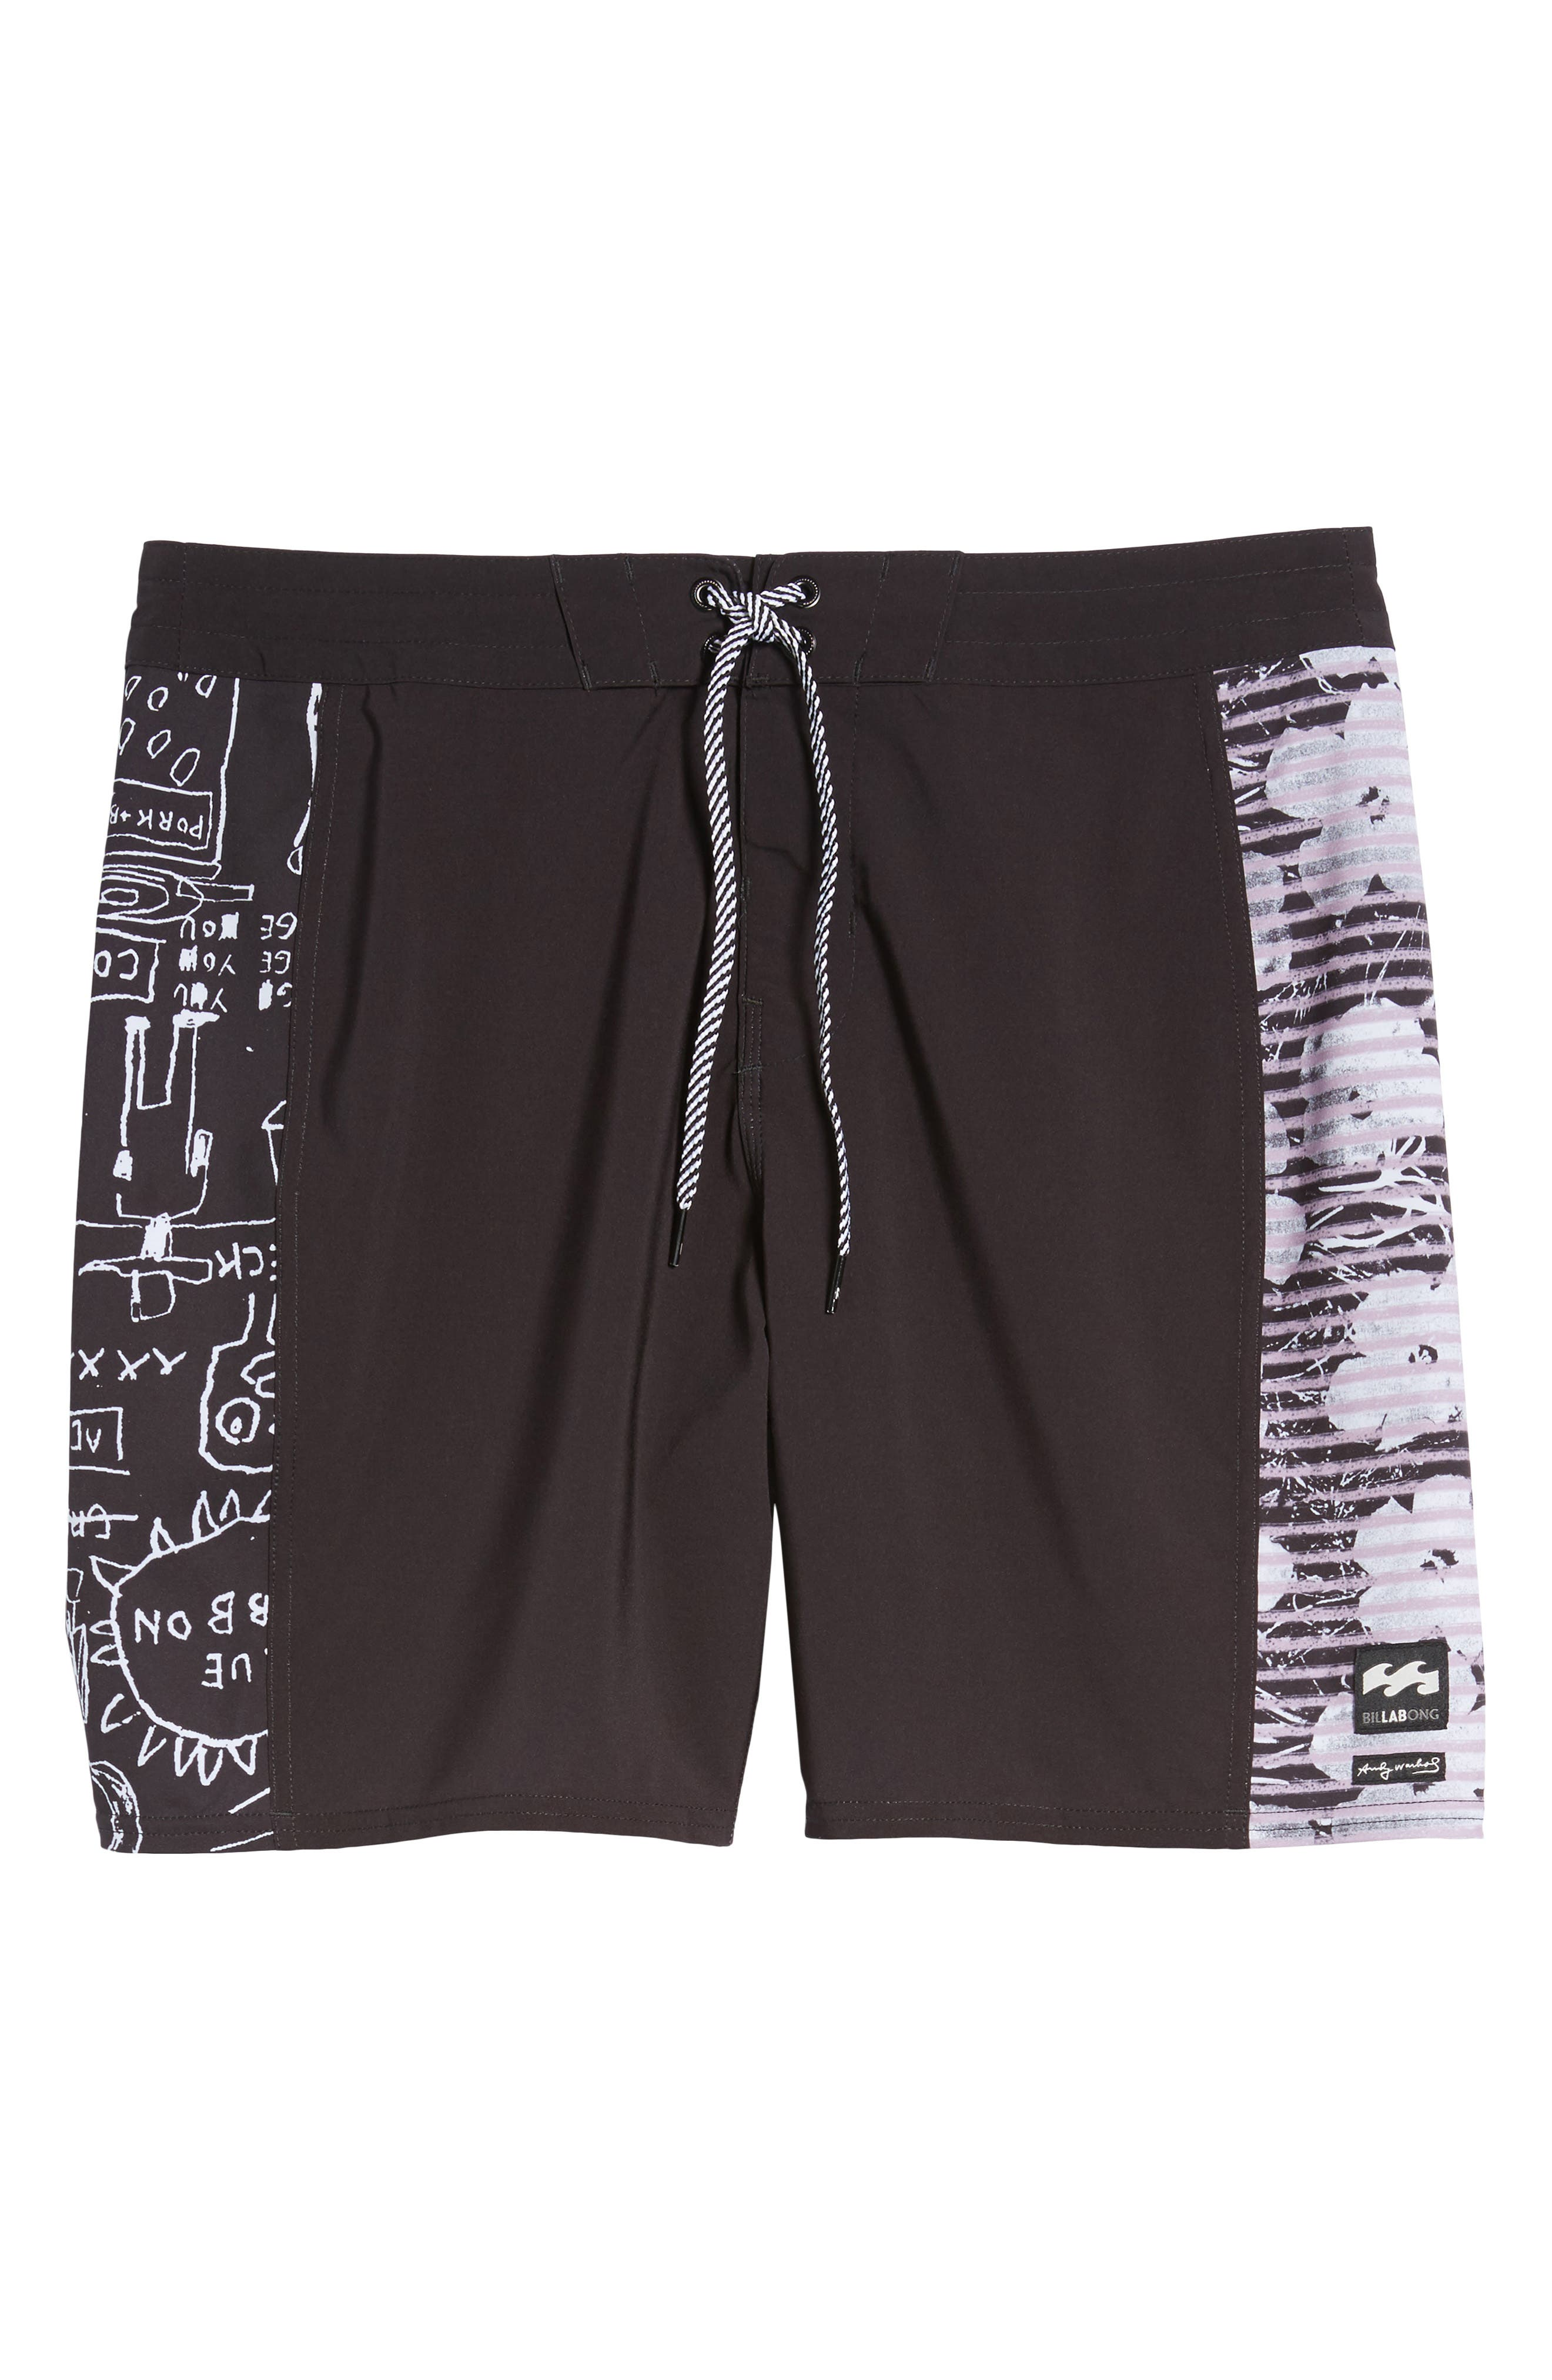 Holy Are You Board Shorts,                             Alternate thumbnail 6, color,                             001